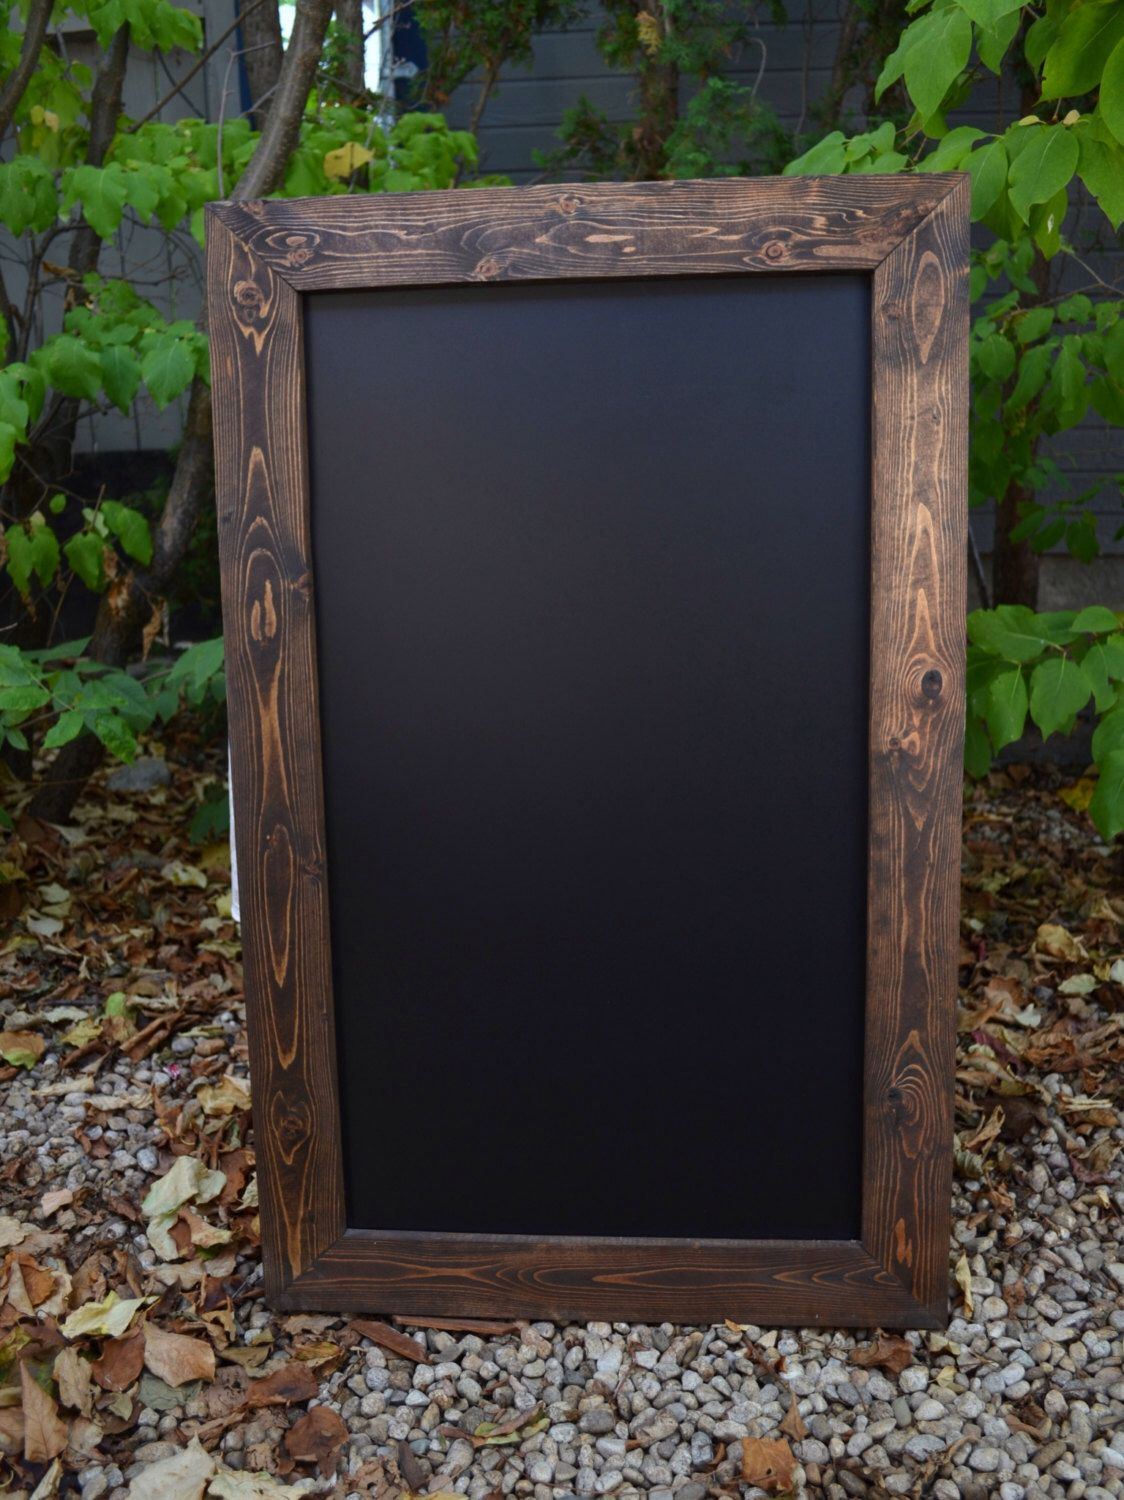 Large Rustic Framed Chalkboard 44x28, Rustic Wedding, Spring Wedding, Seating Chart, Wedding Menu, Wedding Sign, Chalkboard Sign, Blackboard by MintageDesigns on Etsy https://www.etsy.com/listing/157040229/large-rustic-framed-chalkboard-44x28